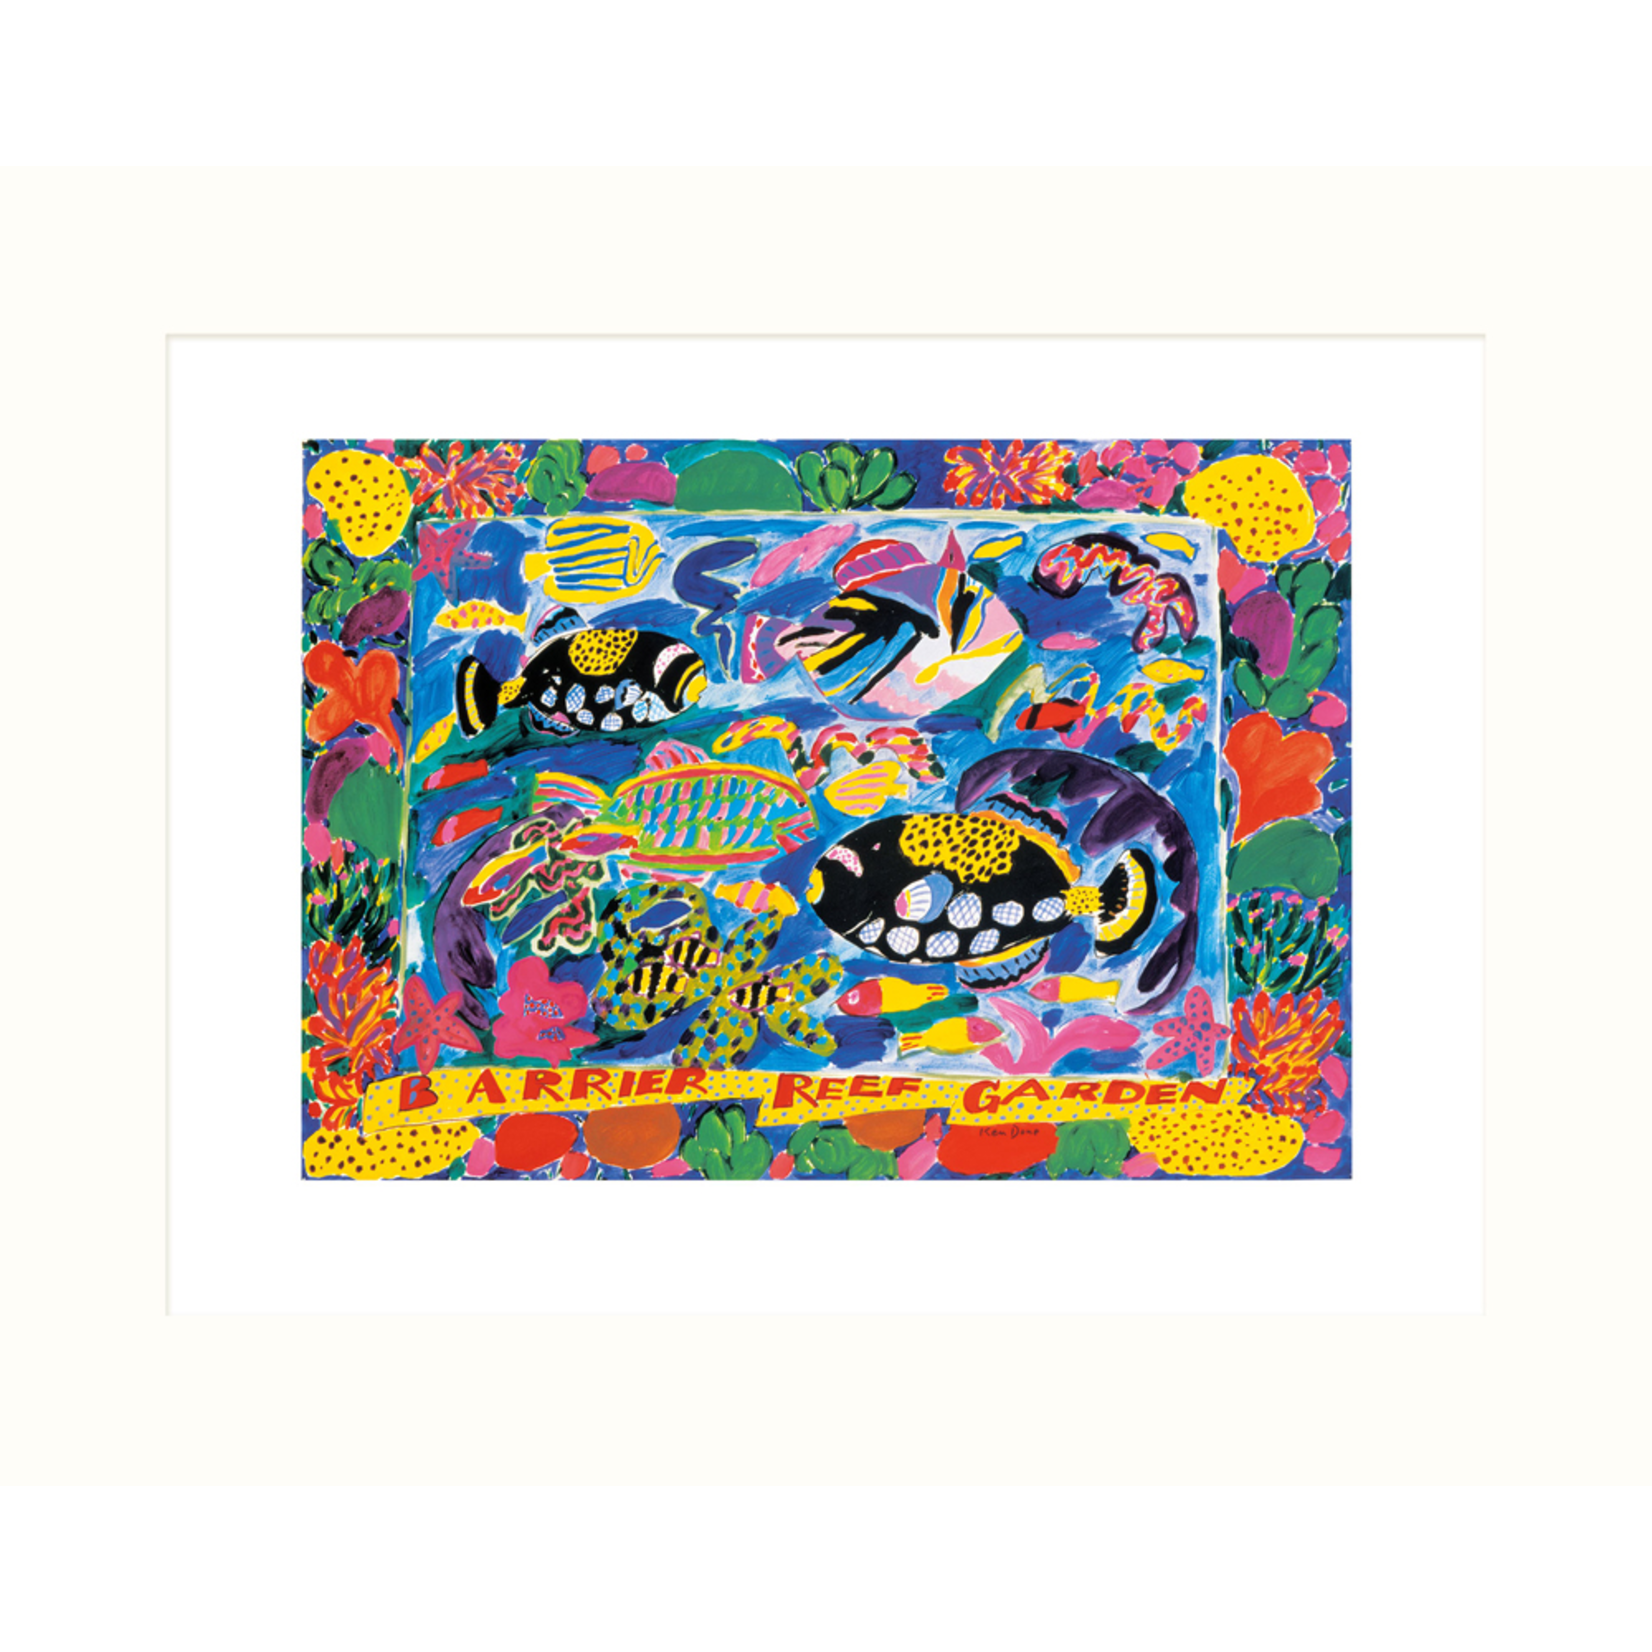 Limited Edition Prints Barrier Reef garden, 1984